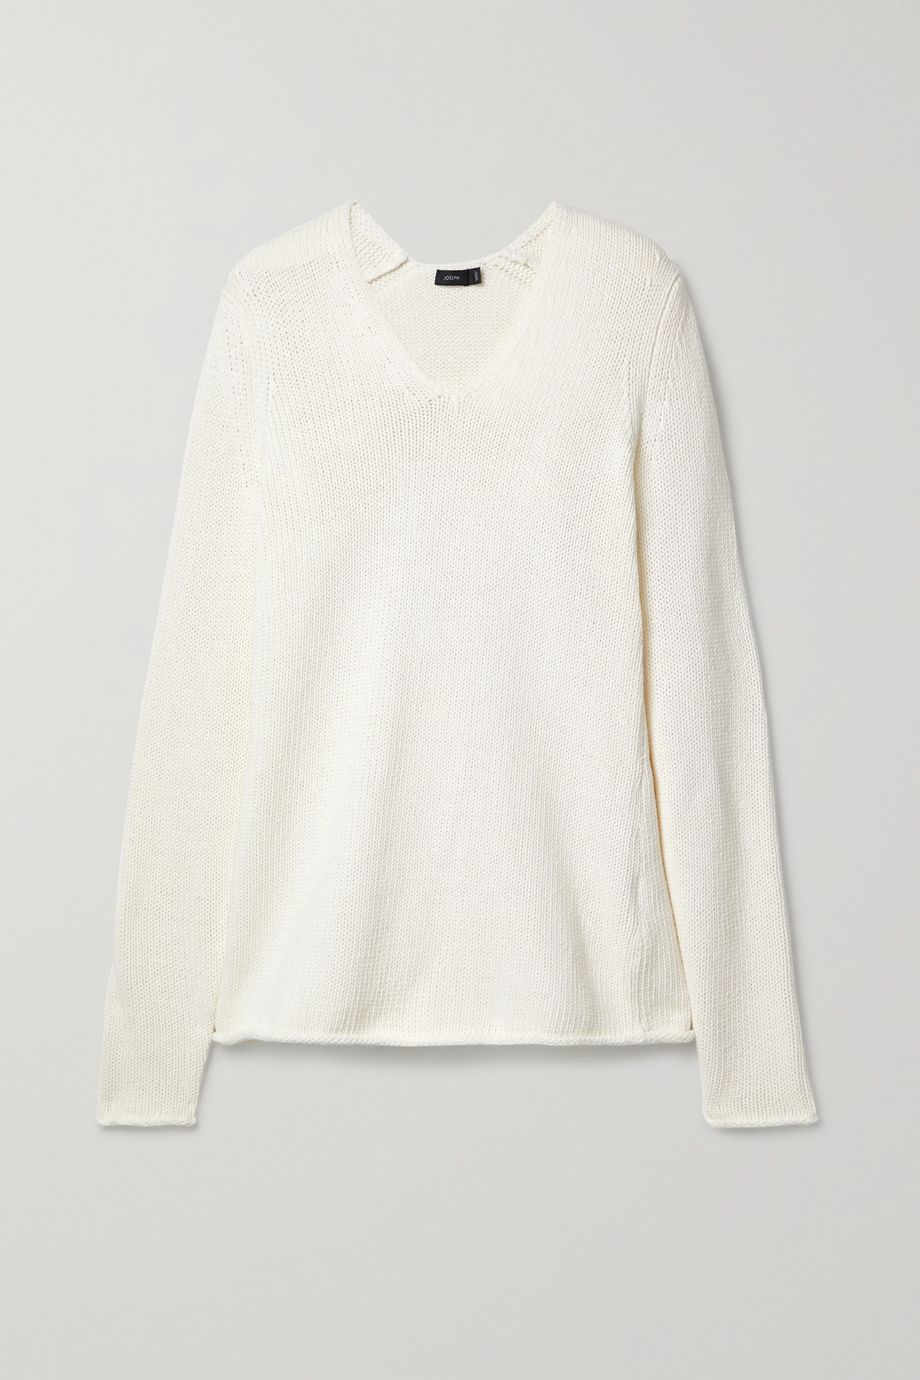 Joseph Sloppy Joe cotton-blend sweater